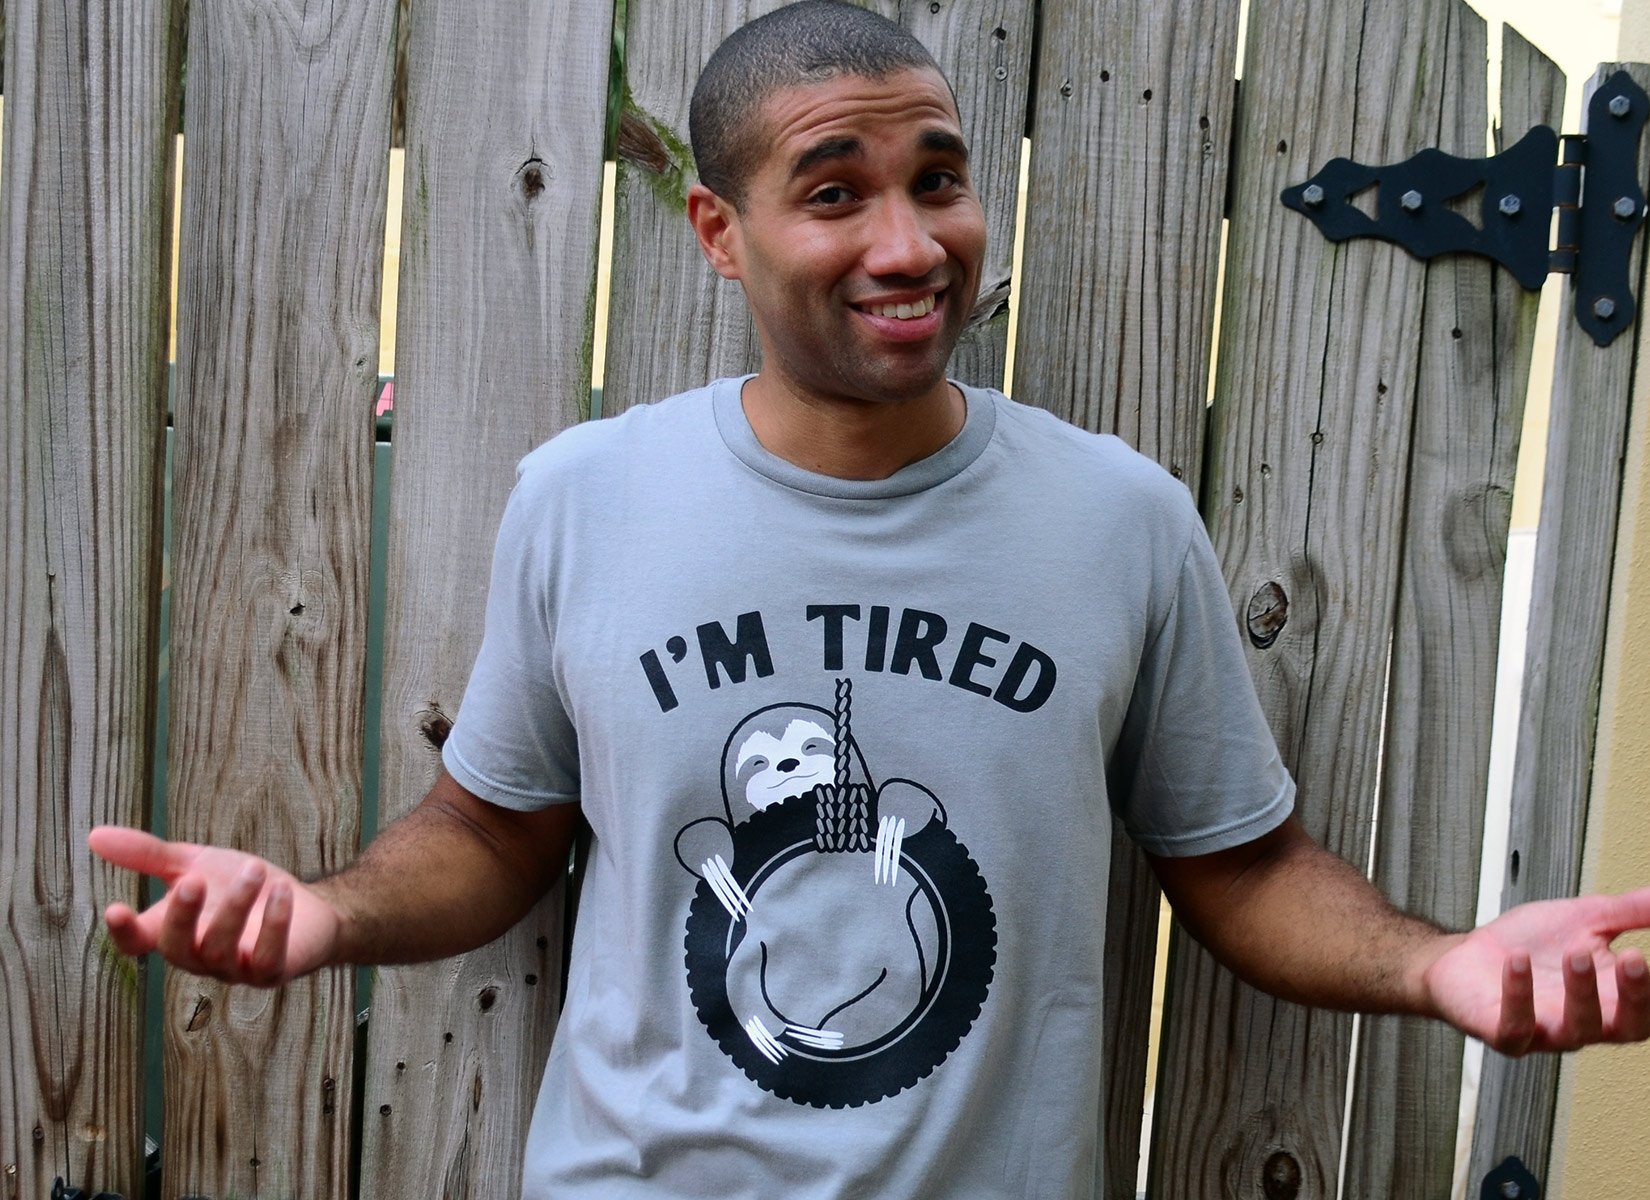 I'm Tired Sloth on Mens T-Shirt